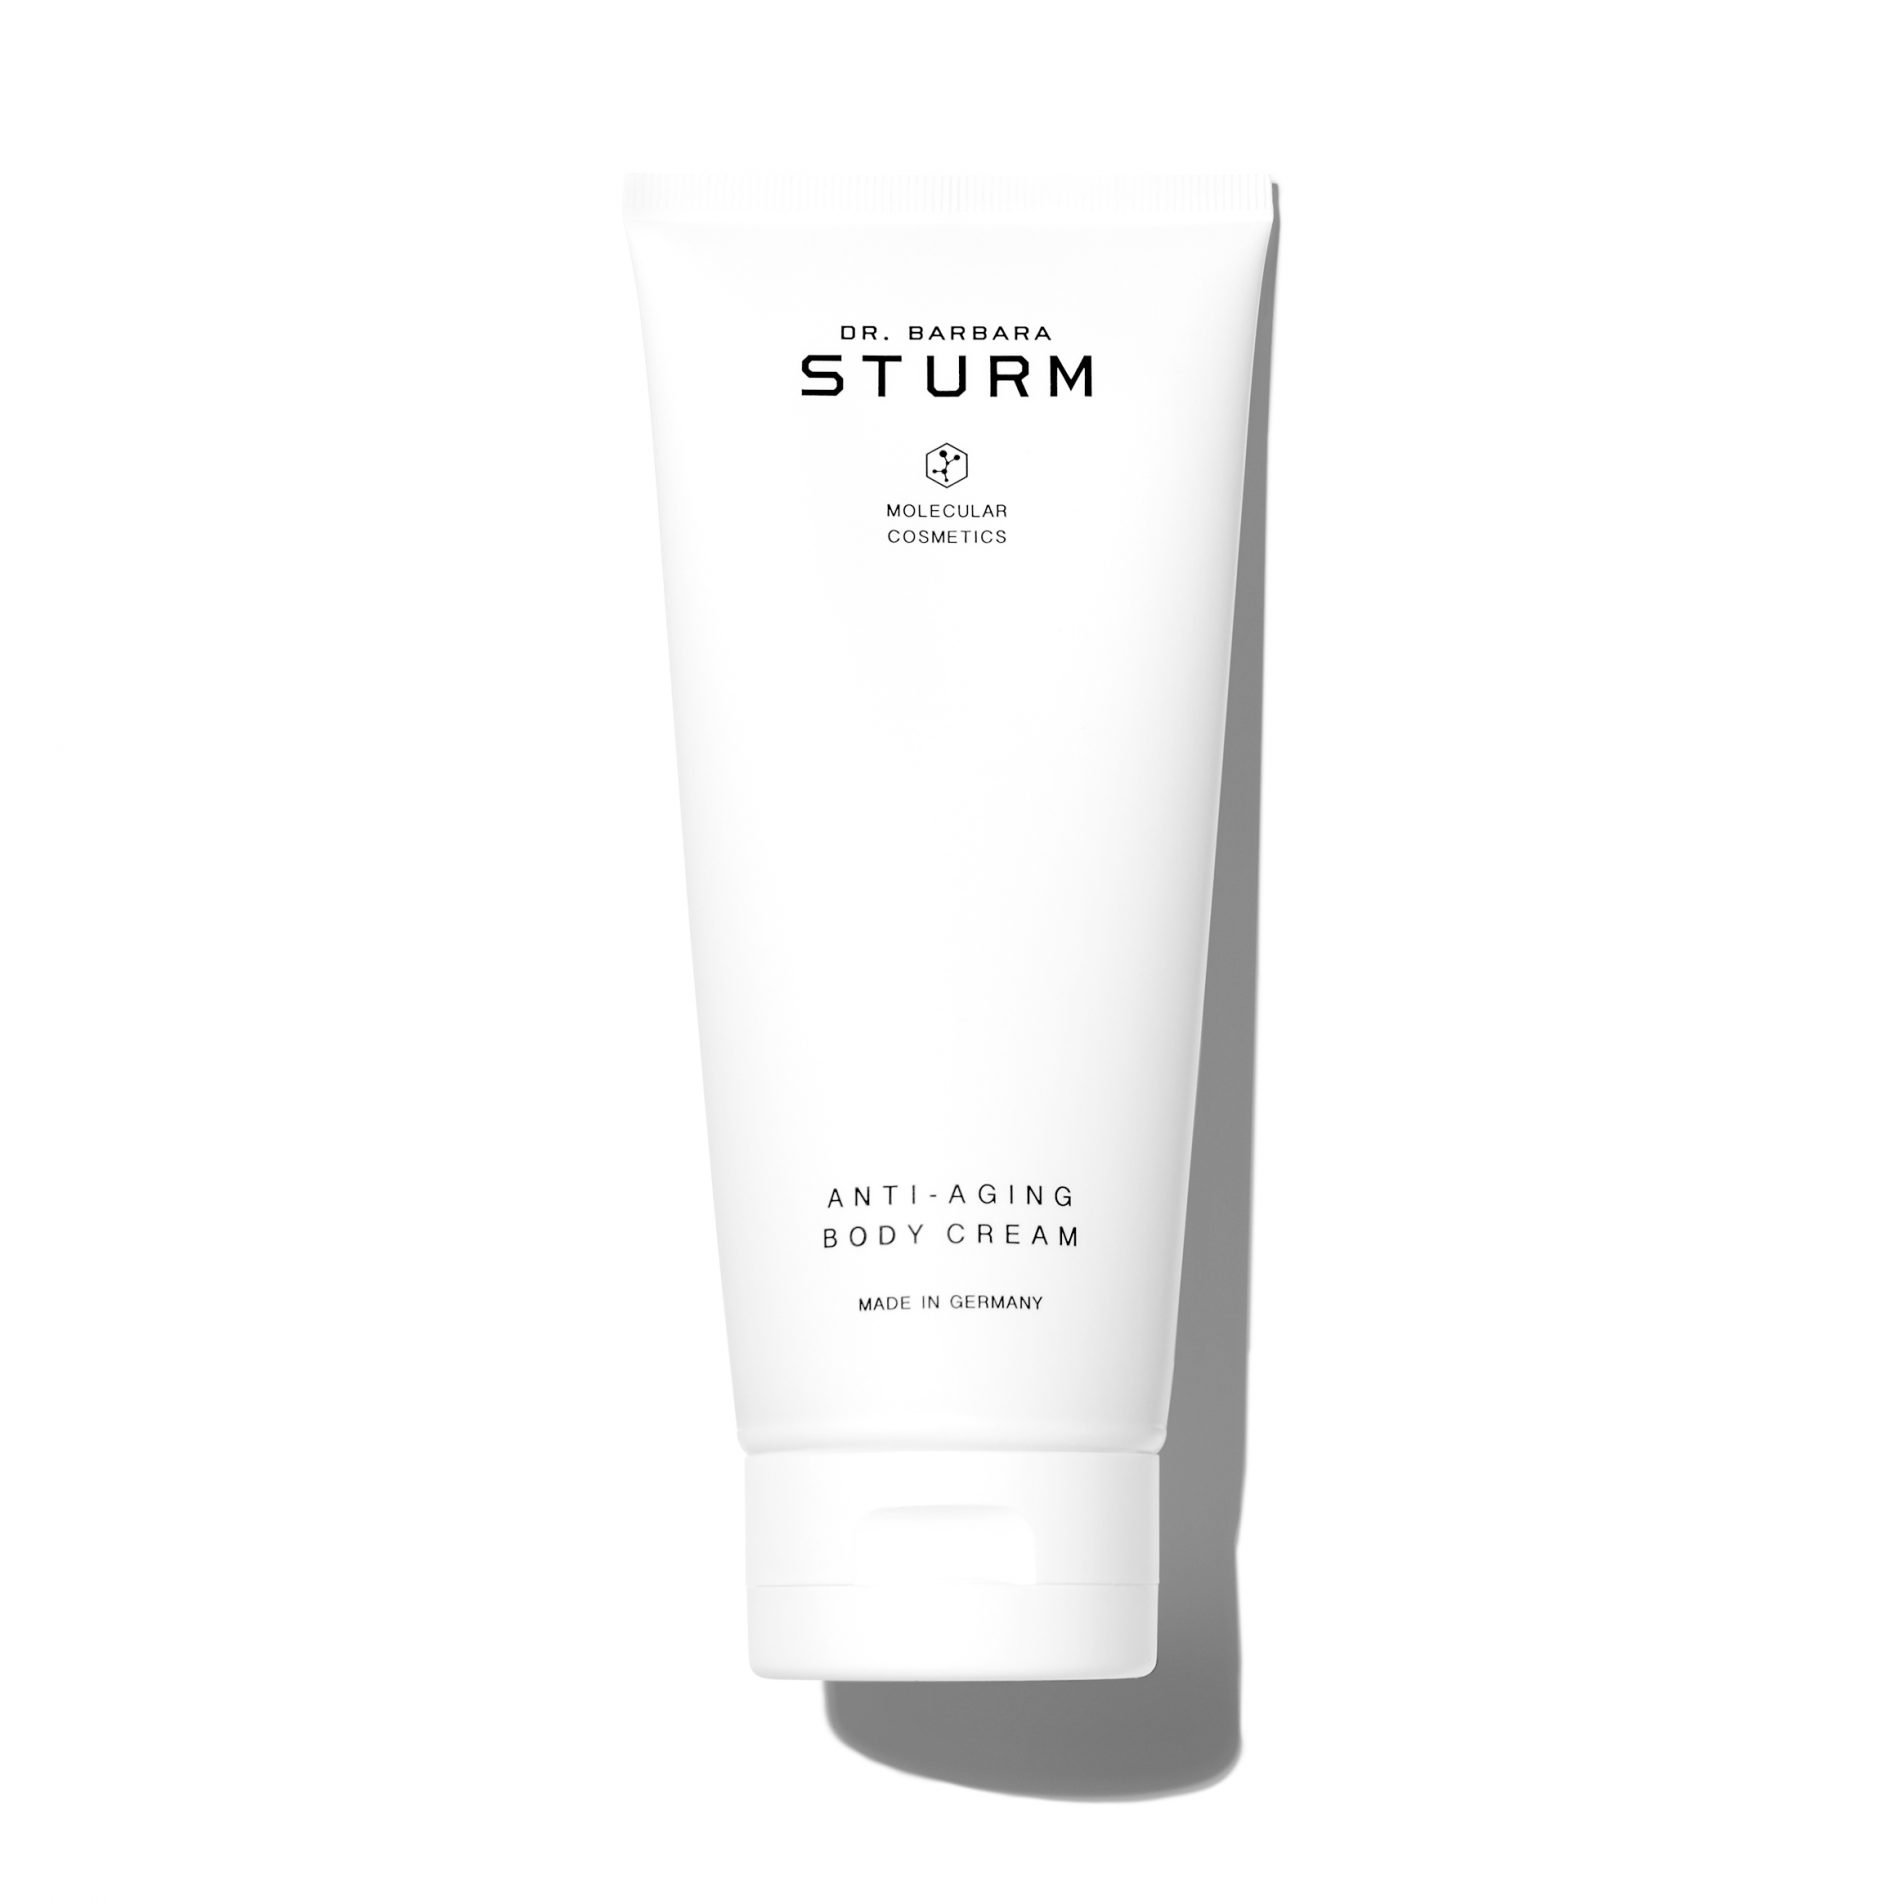 Dr. Barbara Sturm Anti-aging body cream